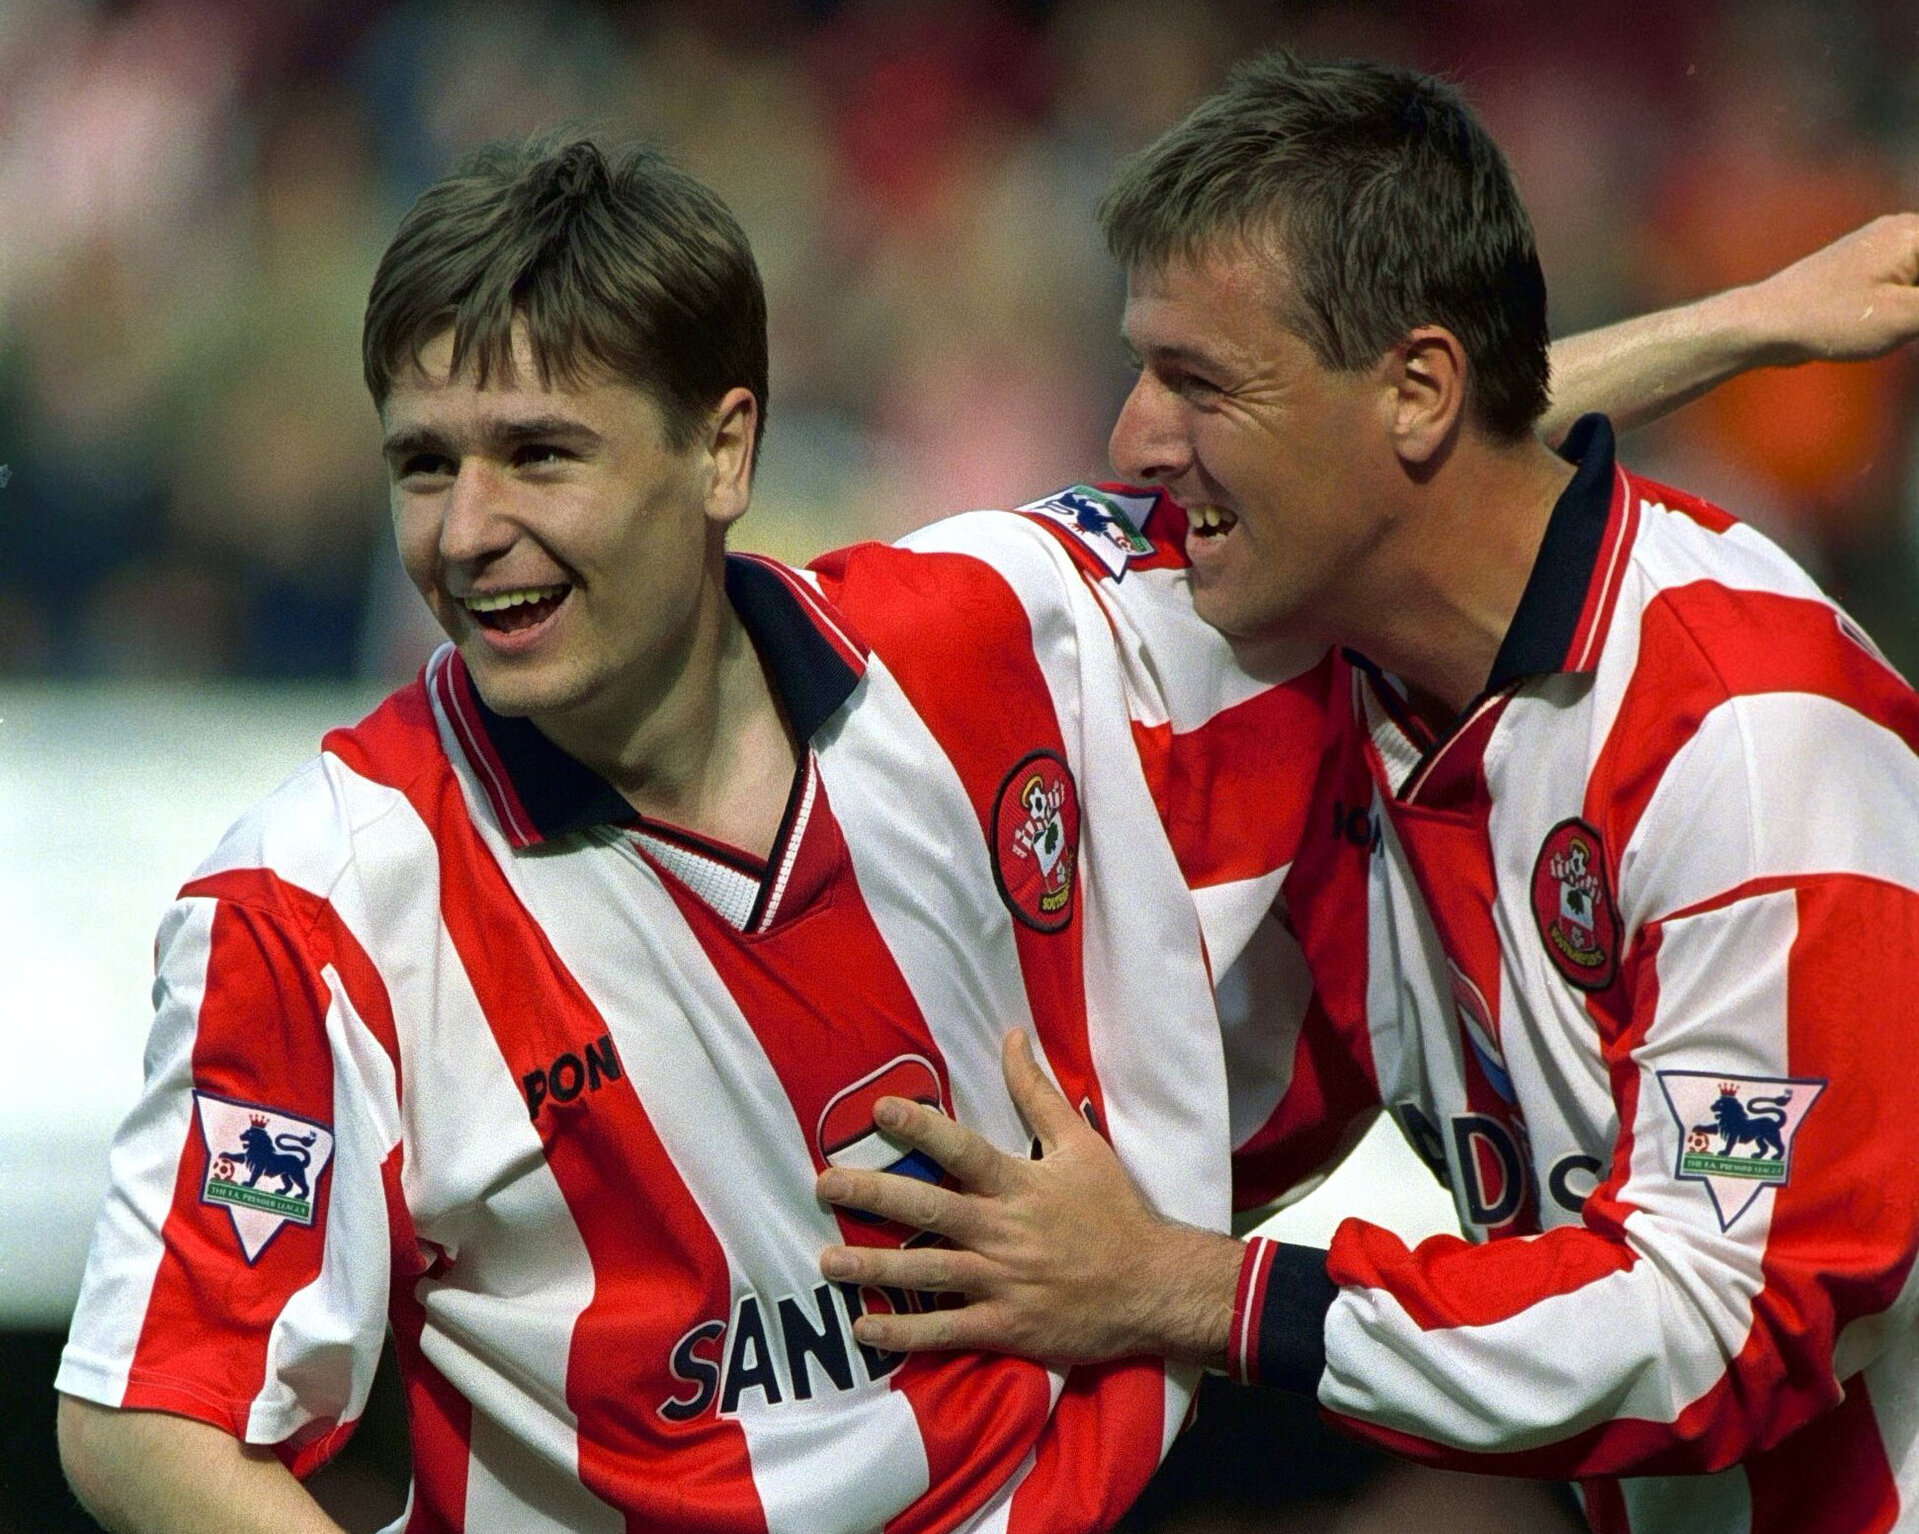 Southampton v Everton 16/5/99 F.A.Premier League  Mandatory Credit: Action Images/Alex Morton  Southampton's Matthew Le Tissier congratulates team mate Marian Pahars for his goal